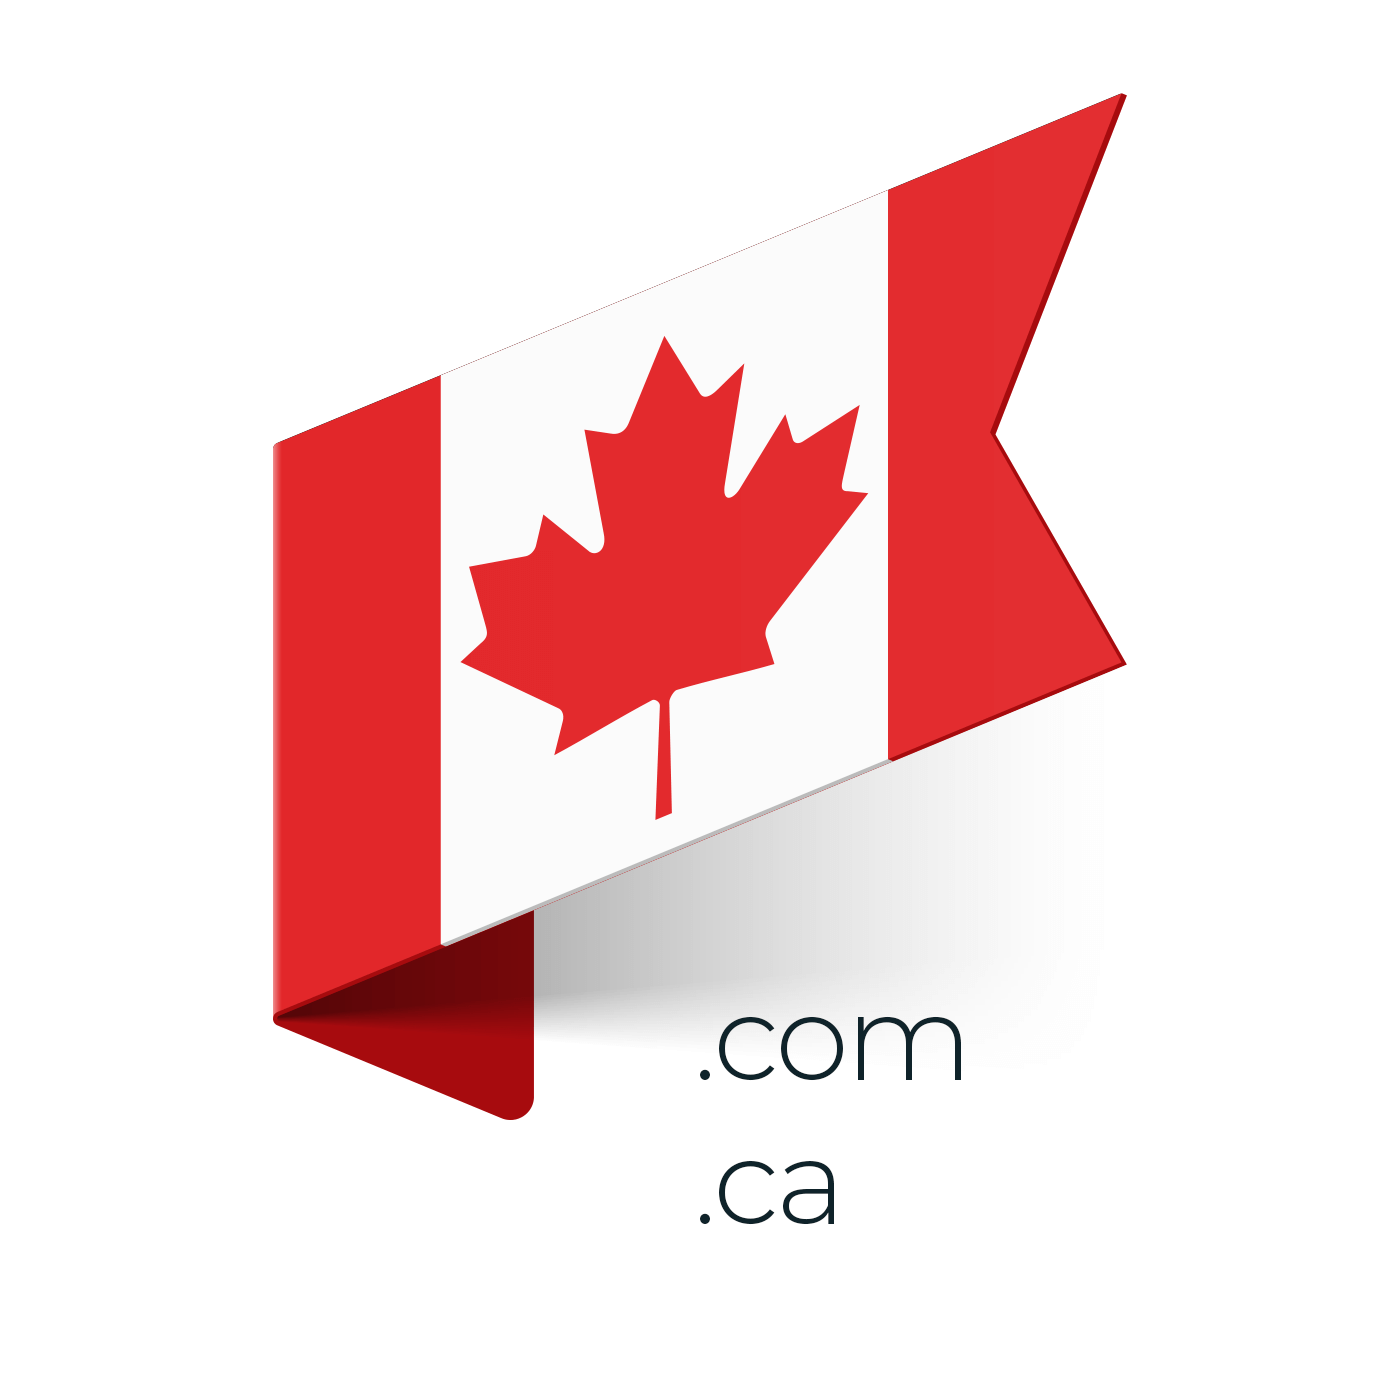 Starting a .com or .ca online business in Canada with the help of Pure-Ecommerce.com